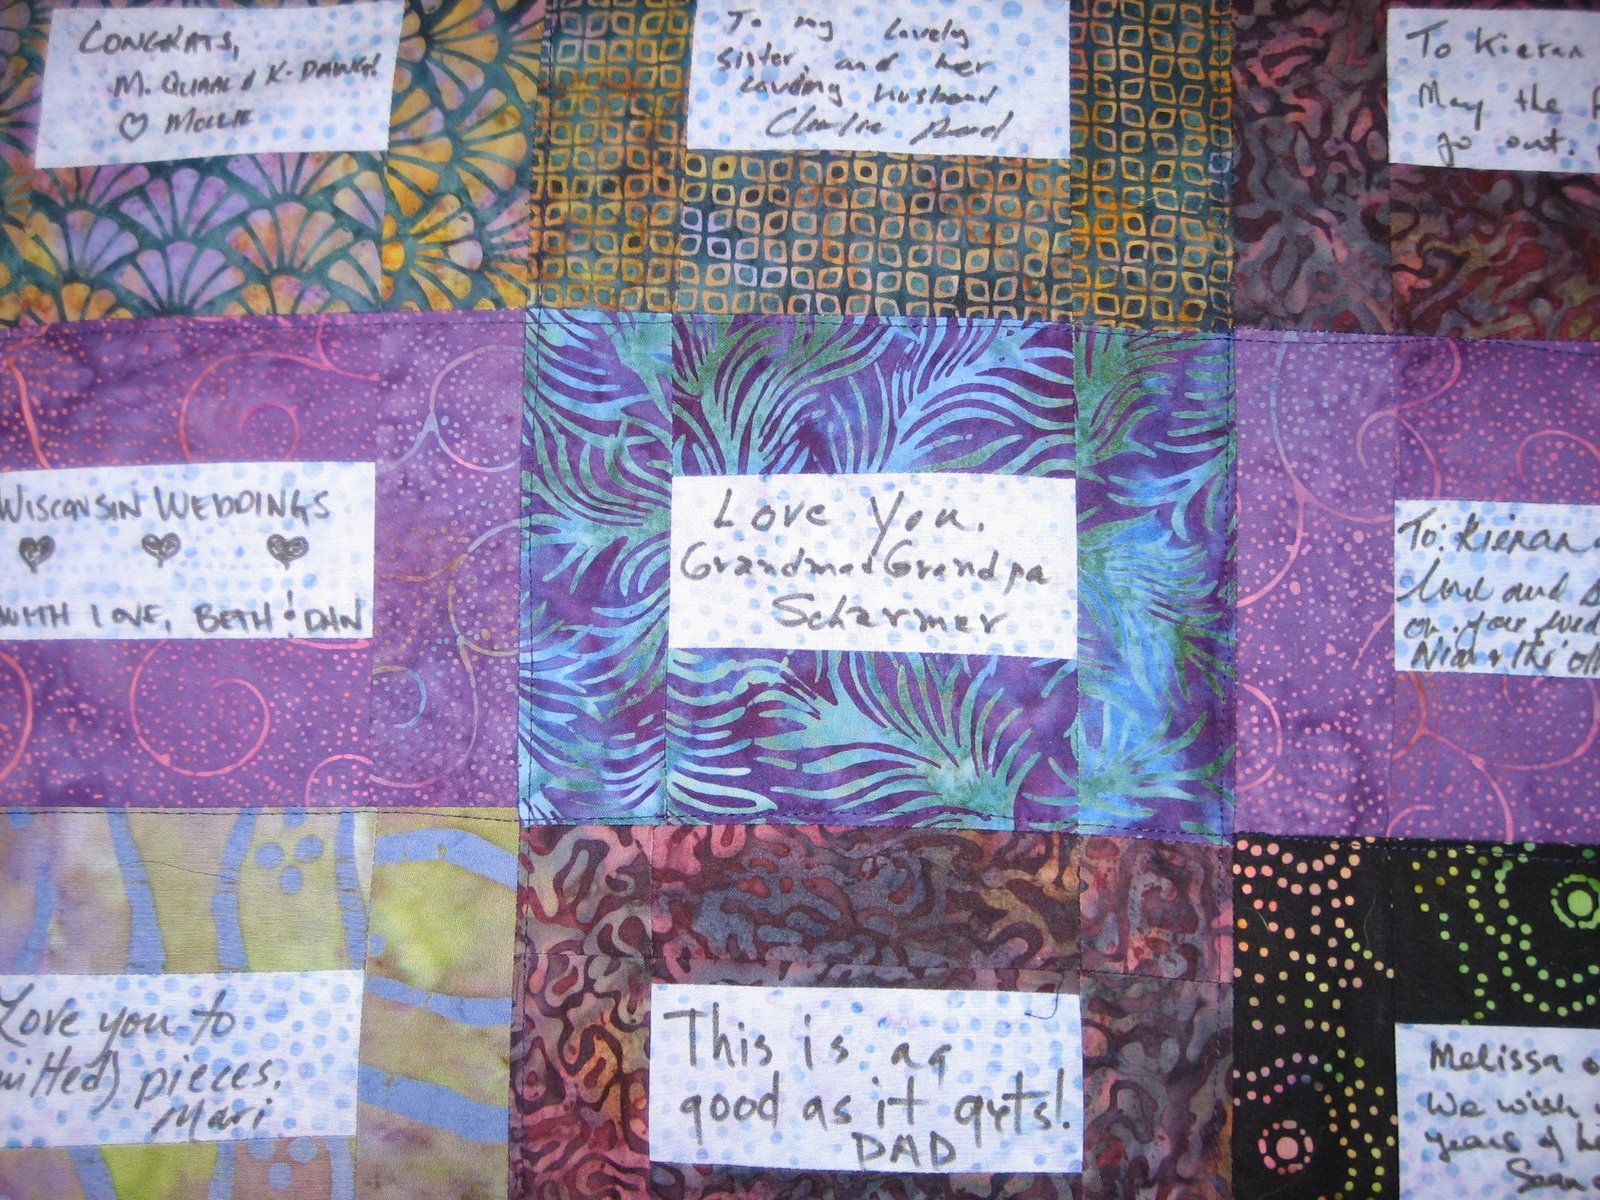 Book color scheme - The Book Also Illustrates Several Different Color Schemes For The Same Quilt Pattern Which Is A Great Way To Spark Creative Thinking As Well As Gain An